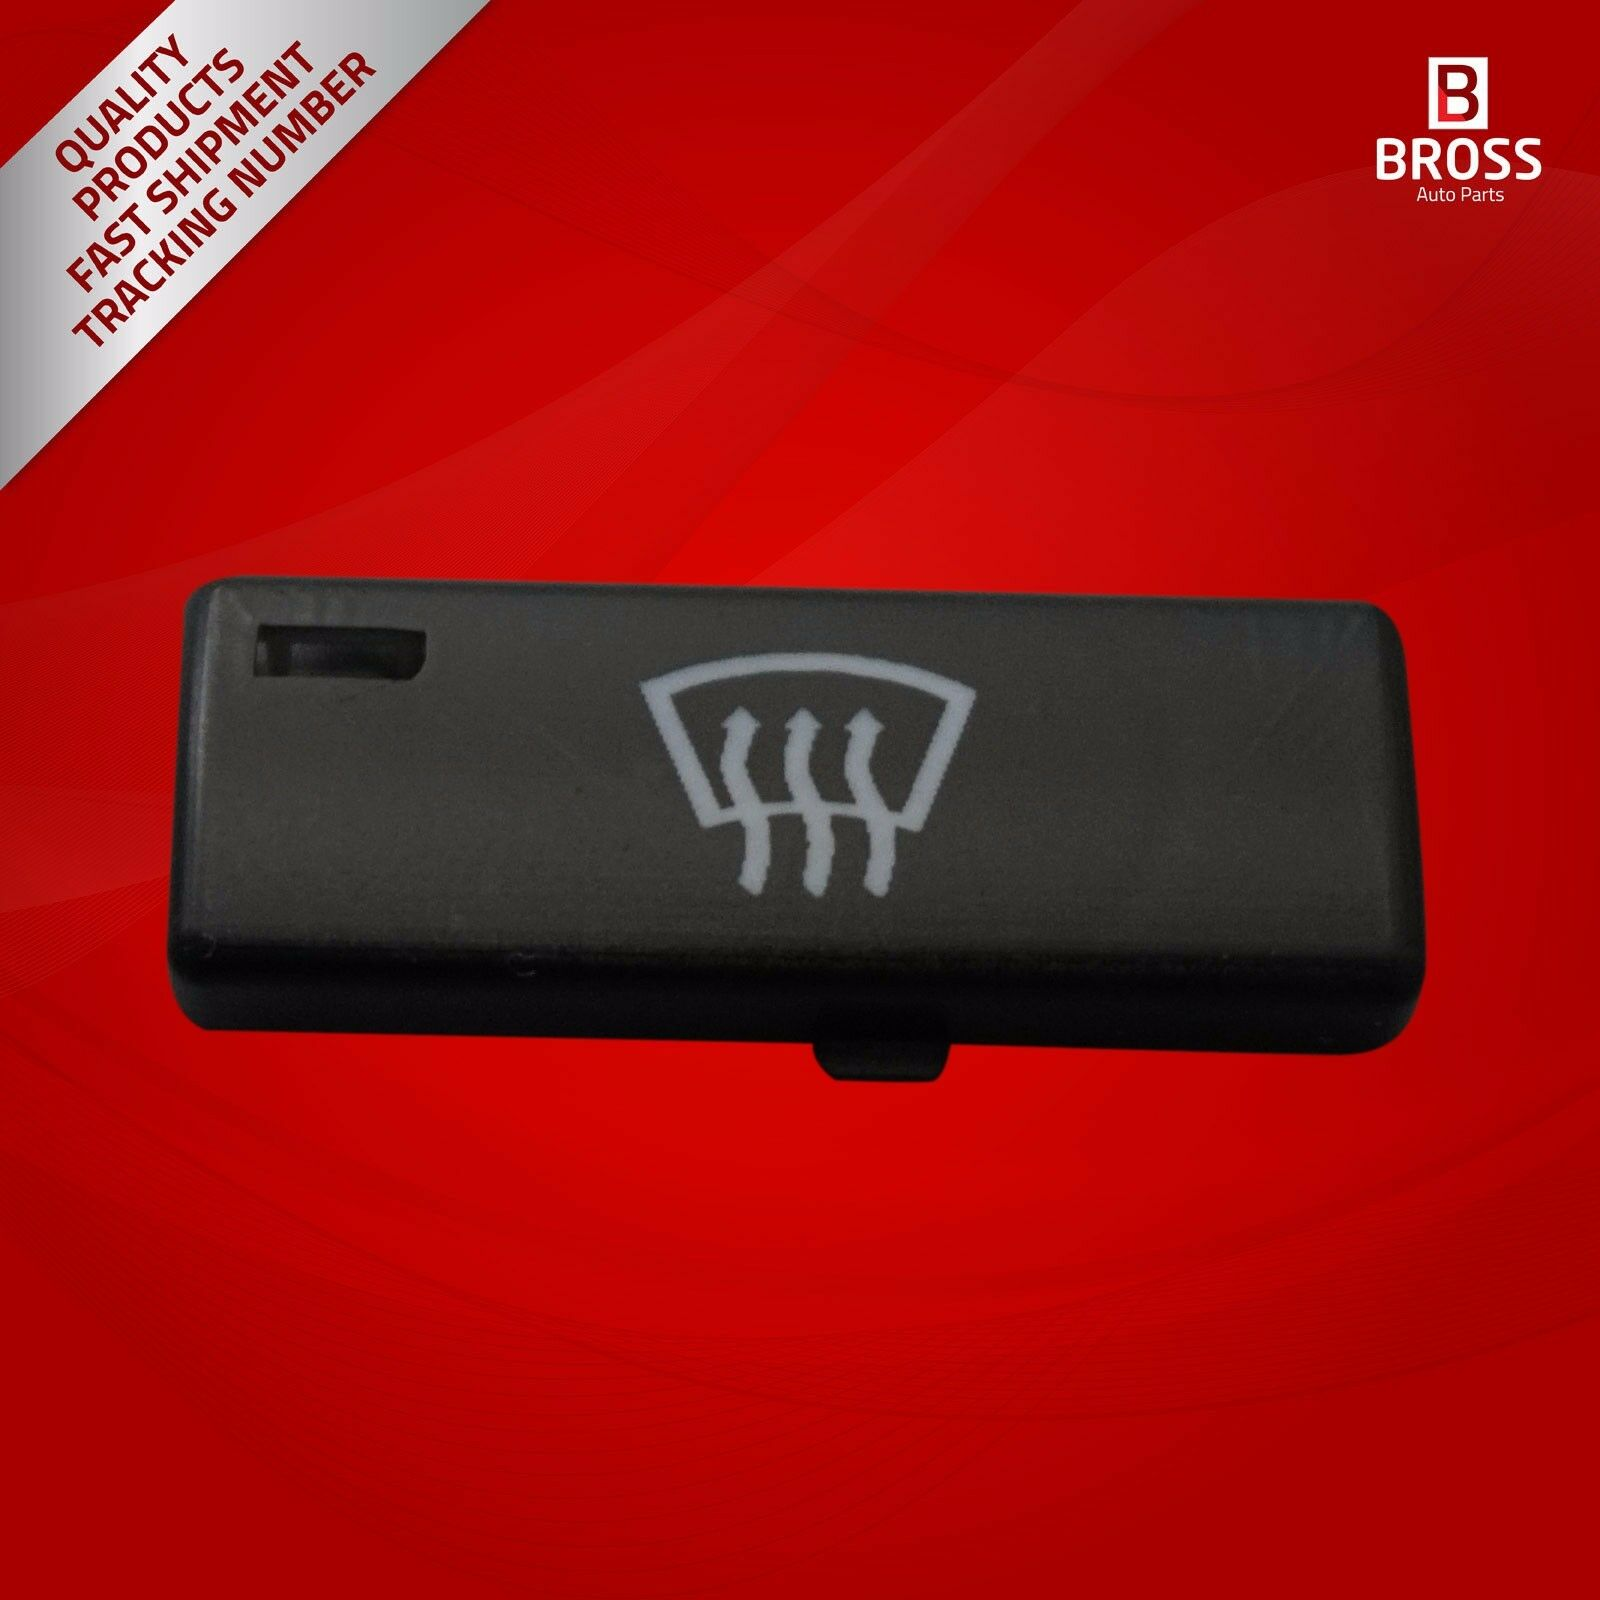 BDP88-7 1 Stuk Heater Climate Control Airconditioning Switch Knop Cover #7 Voor 5 Serie X5 E53 2000- 2007 E39 1995-2003